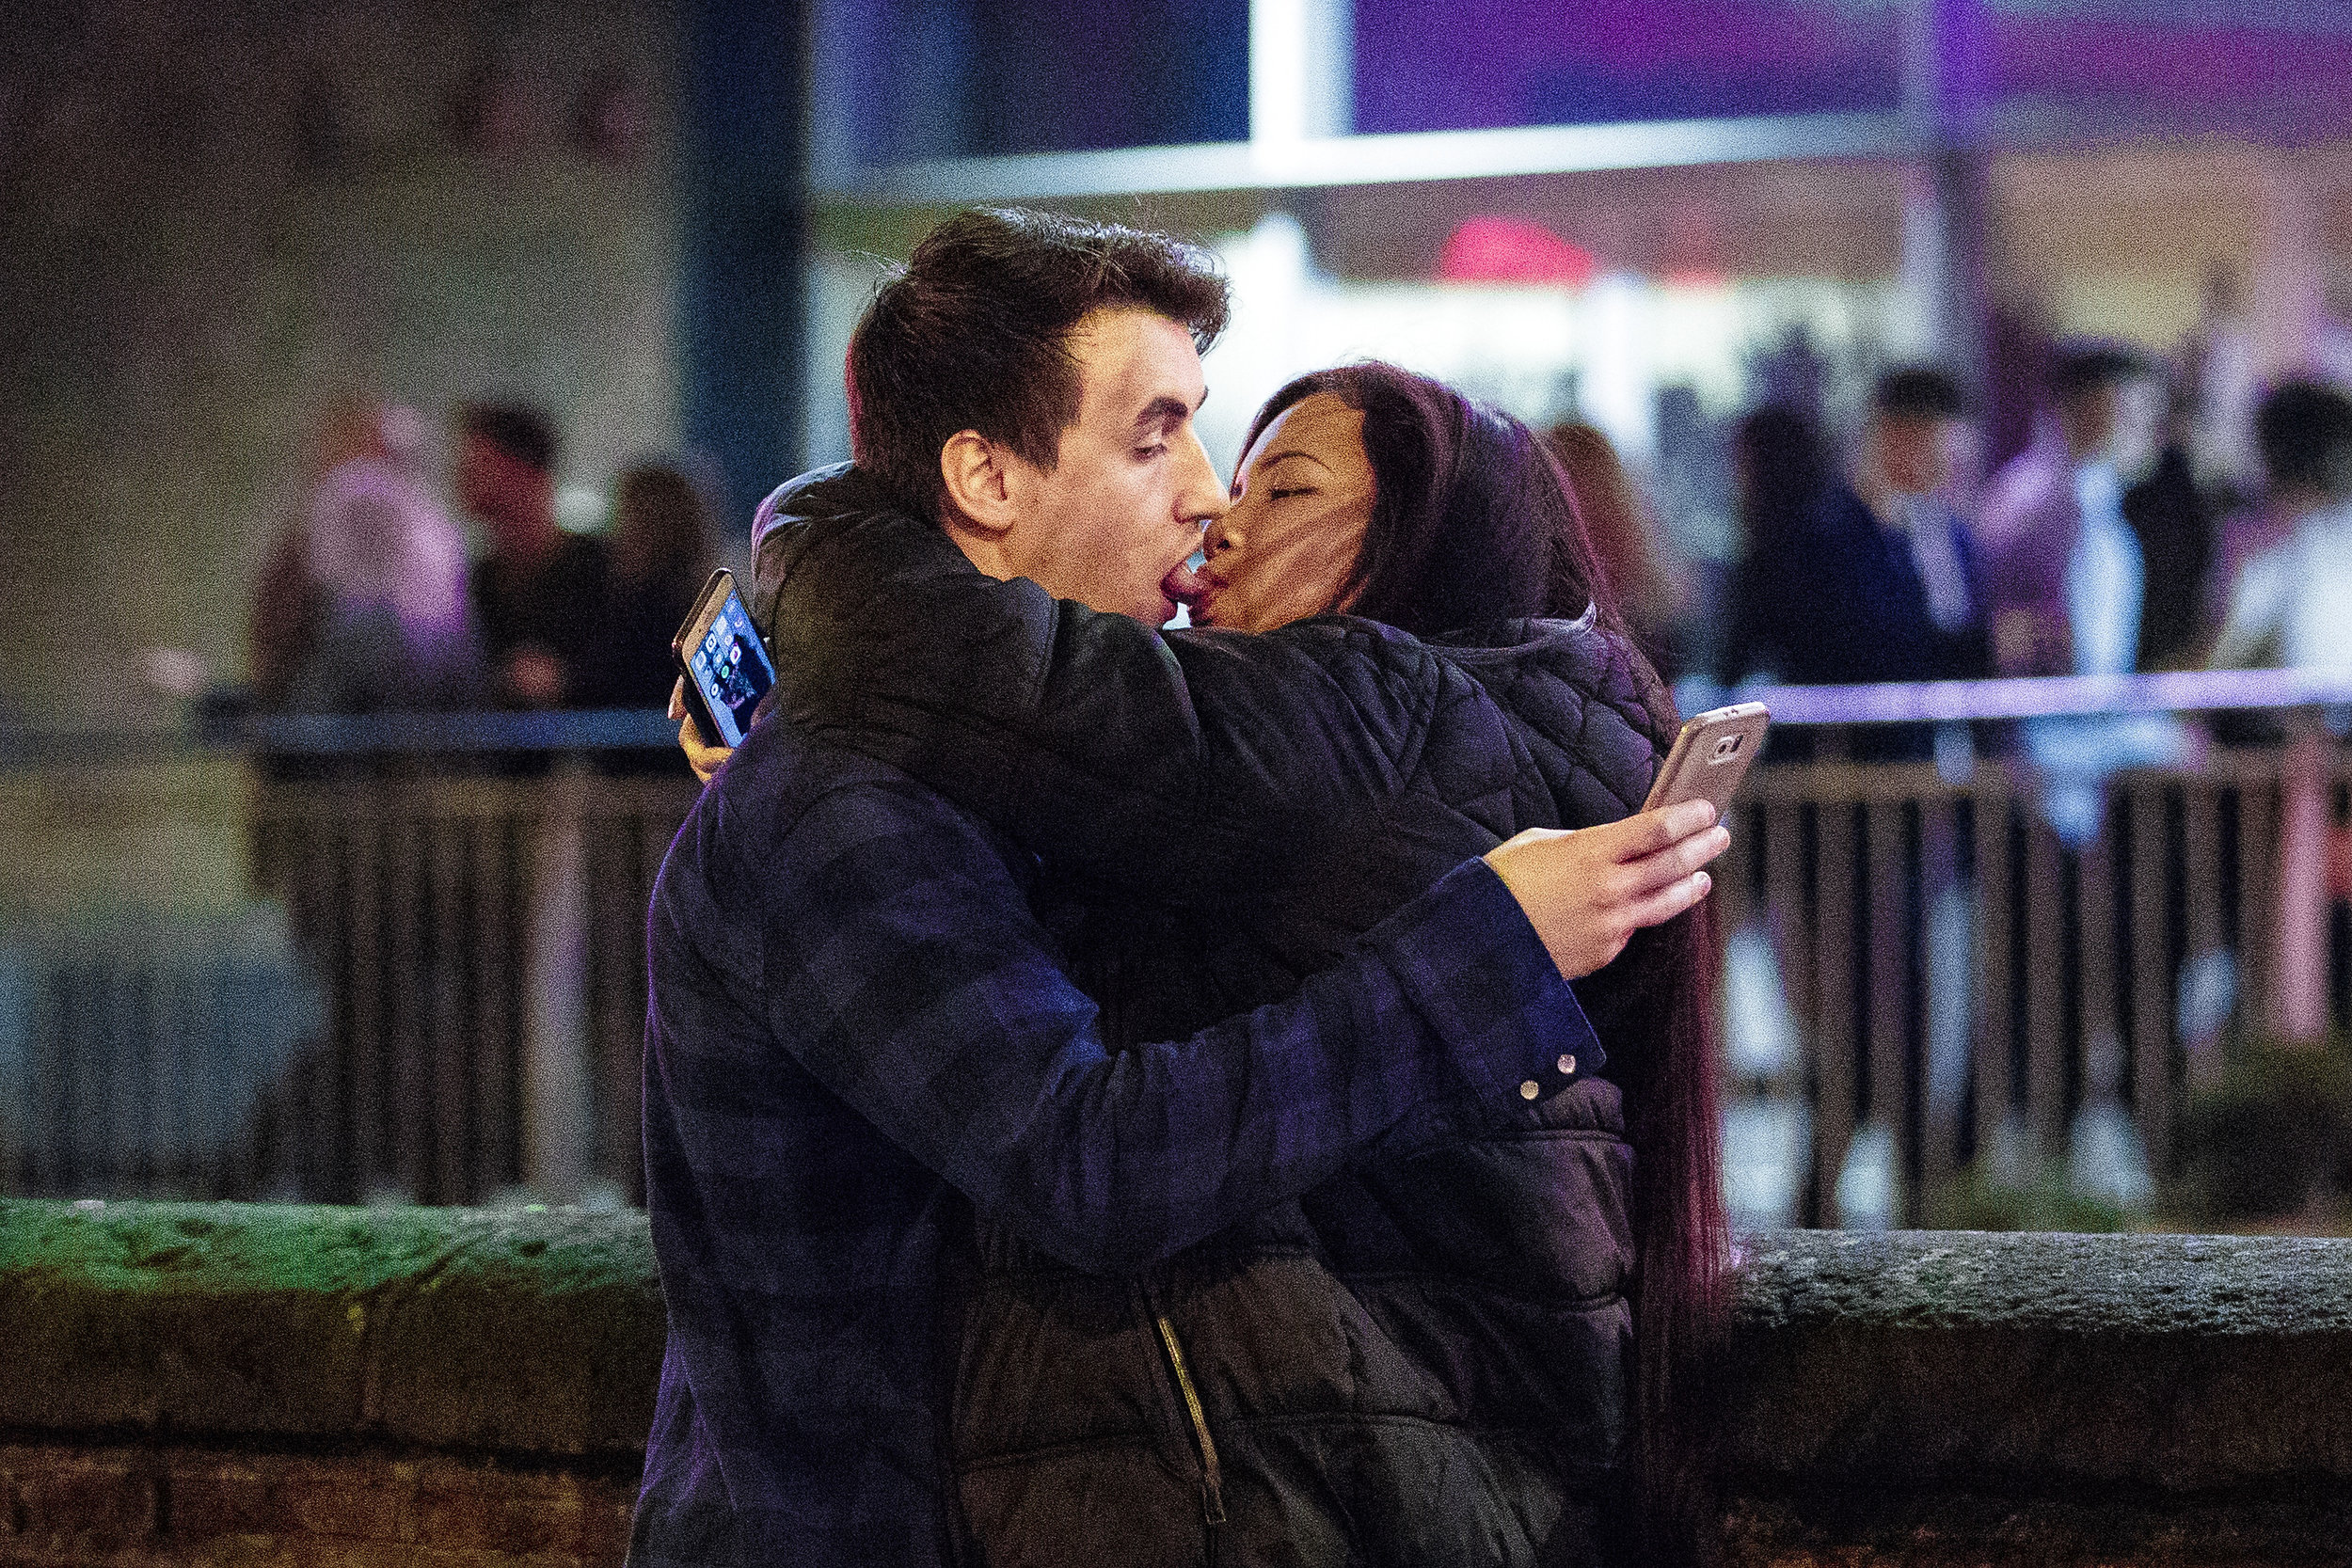 """A couple embrace and French kiss whilst operating their mobile phones during a pre-Christmas """"Mad Friday"""" night outside bars at Deansgate Locks in Manchester City Centre.Photo by Joel Goodman  17 December 2016"""